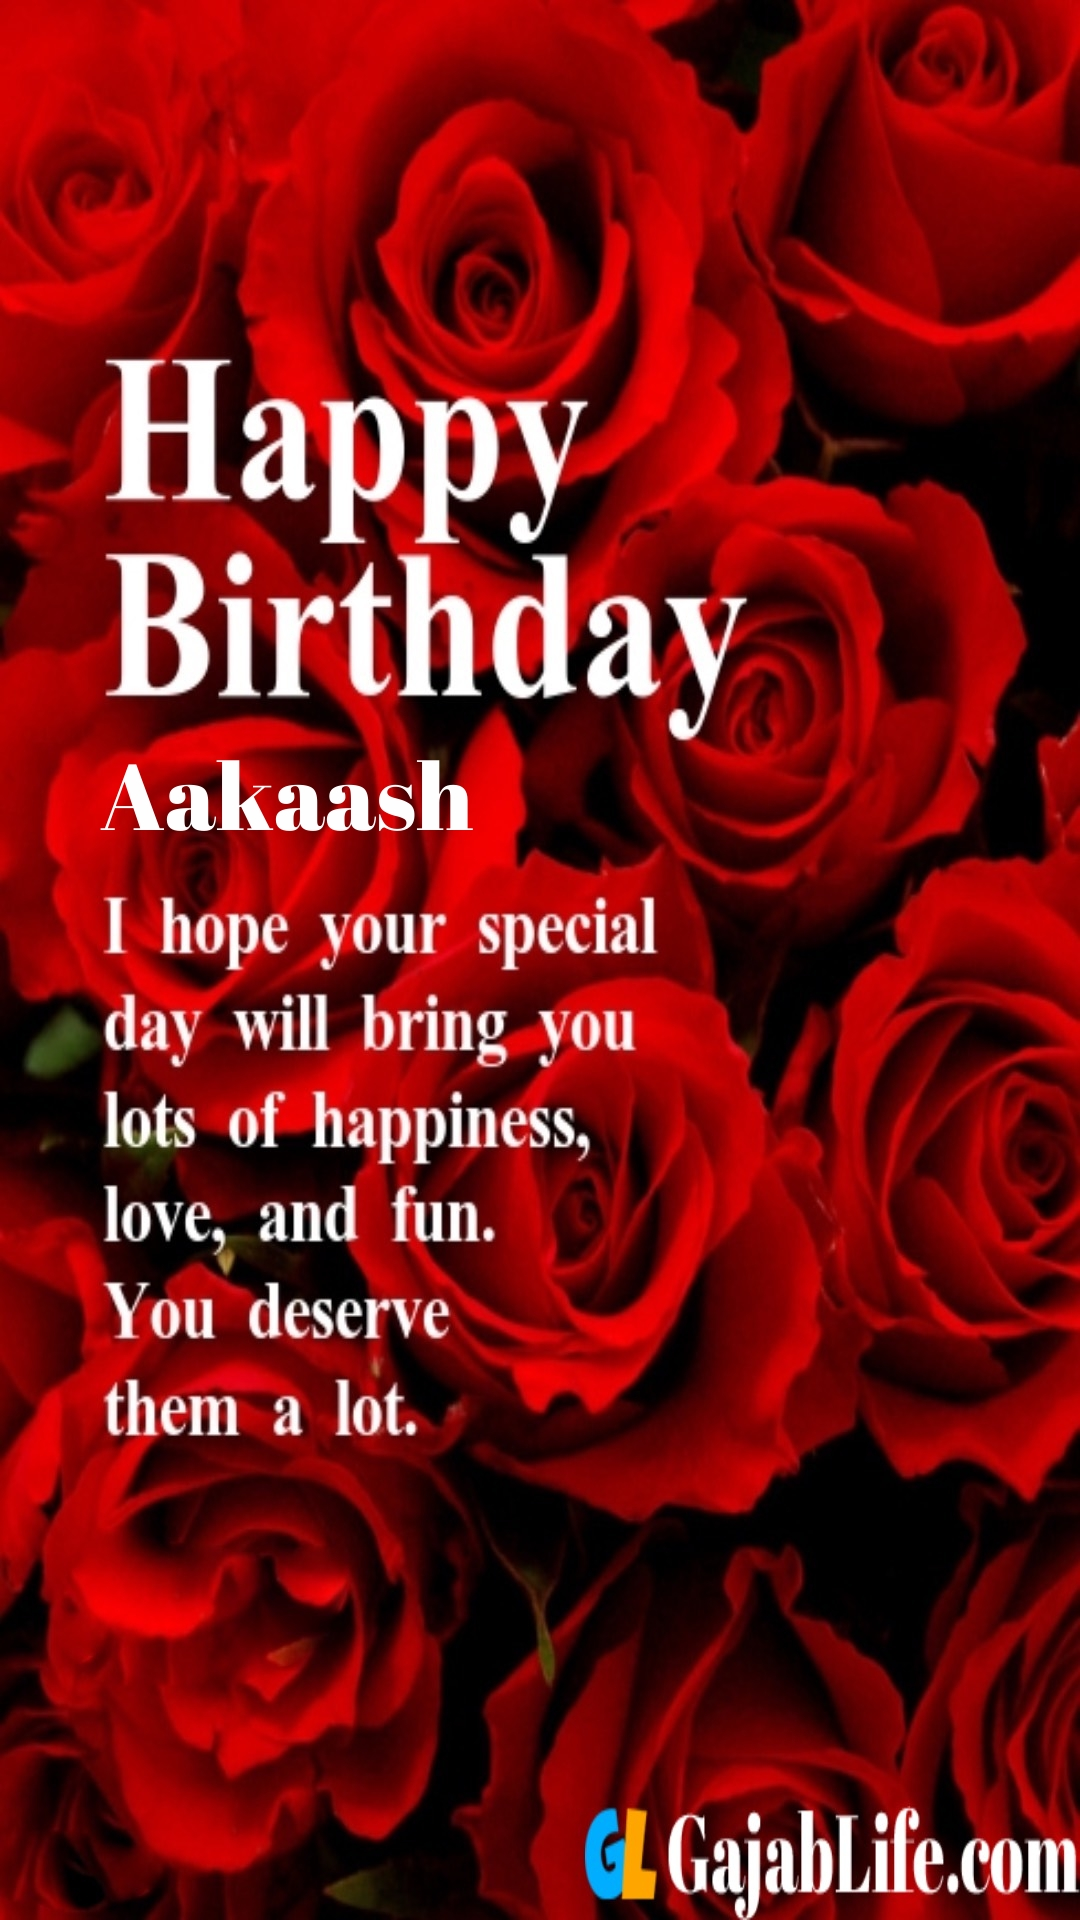 Aakaash birthday greeting card with rose & love